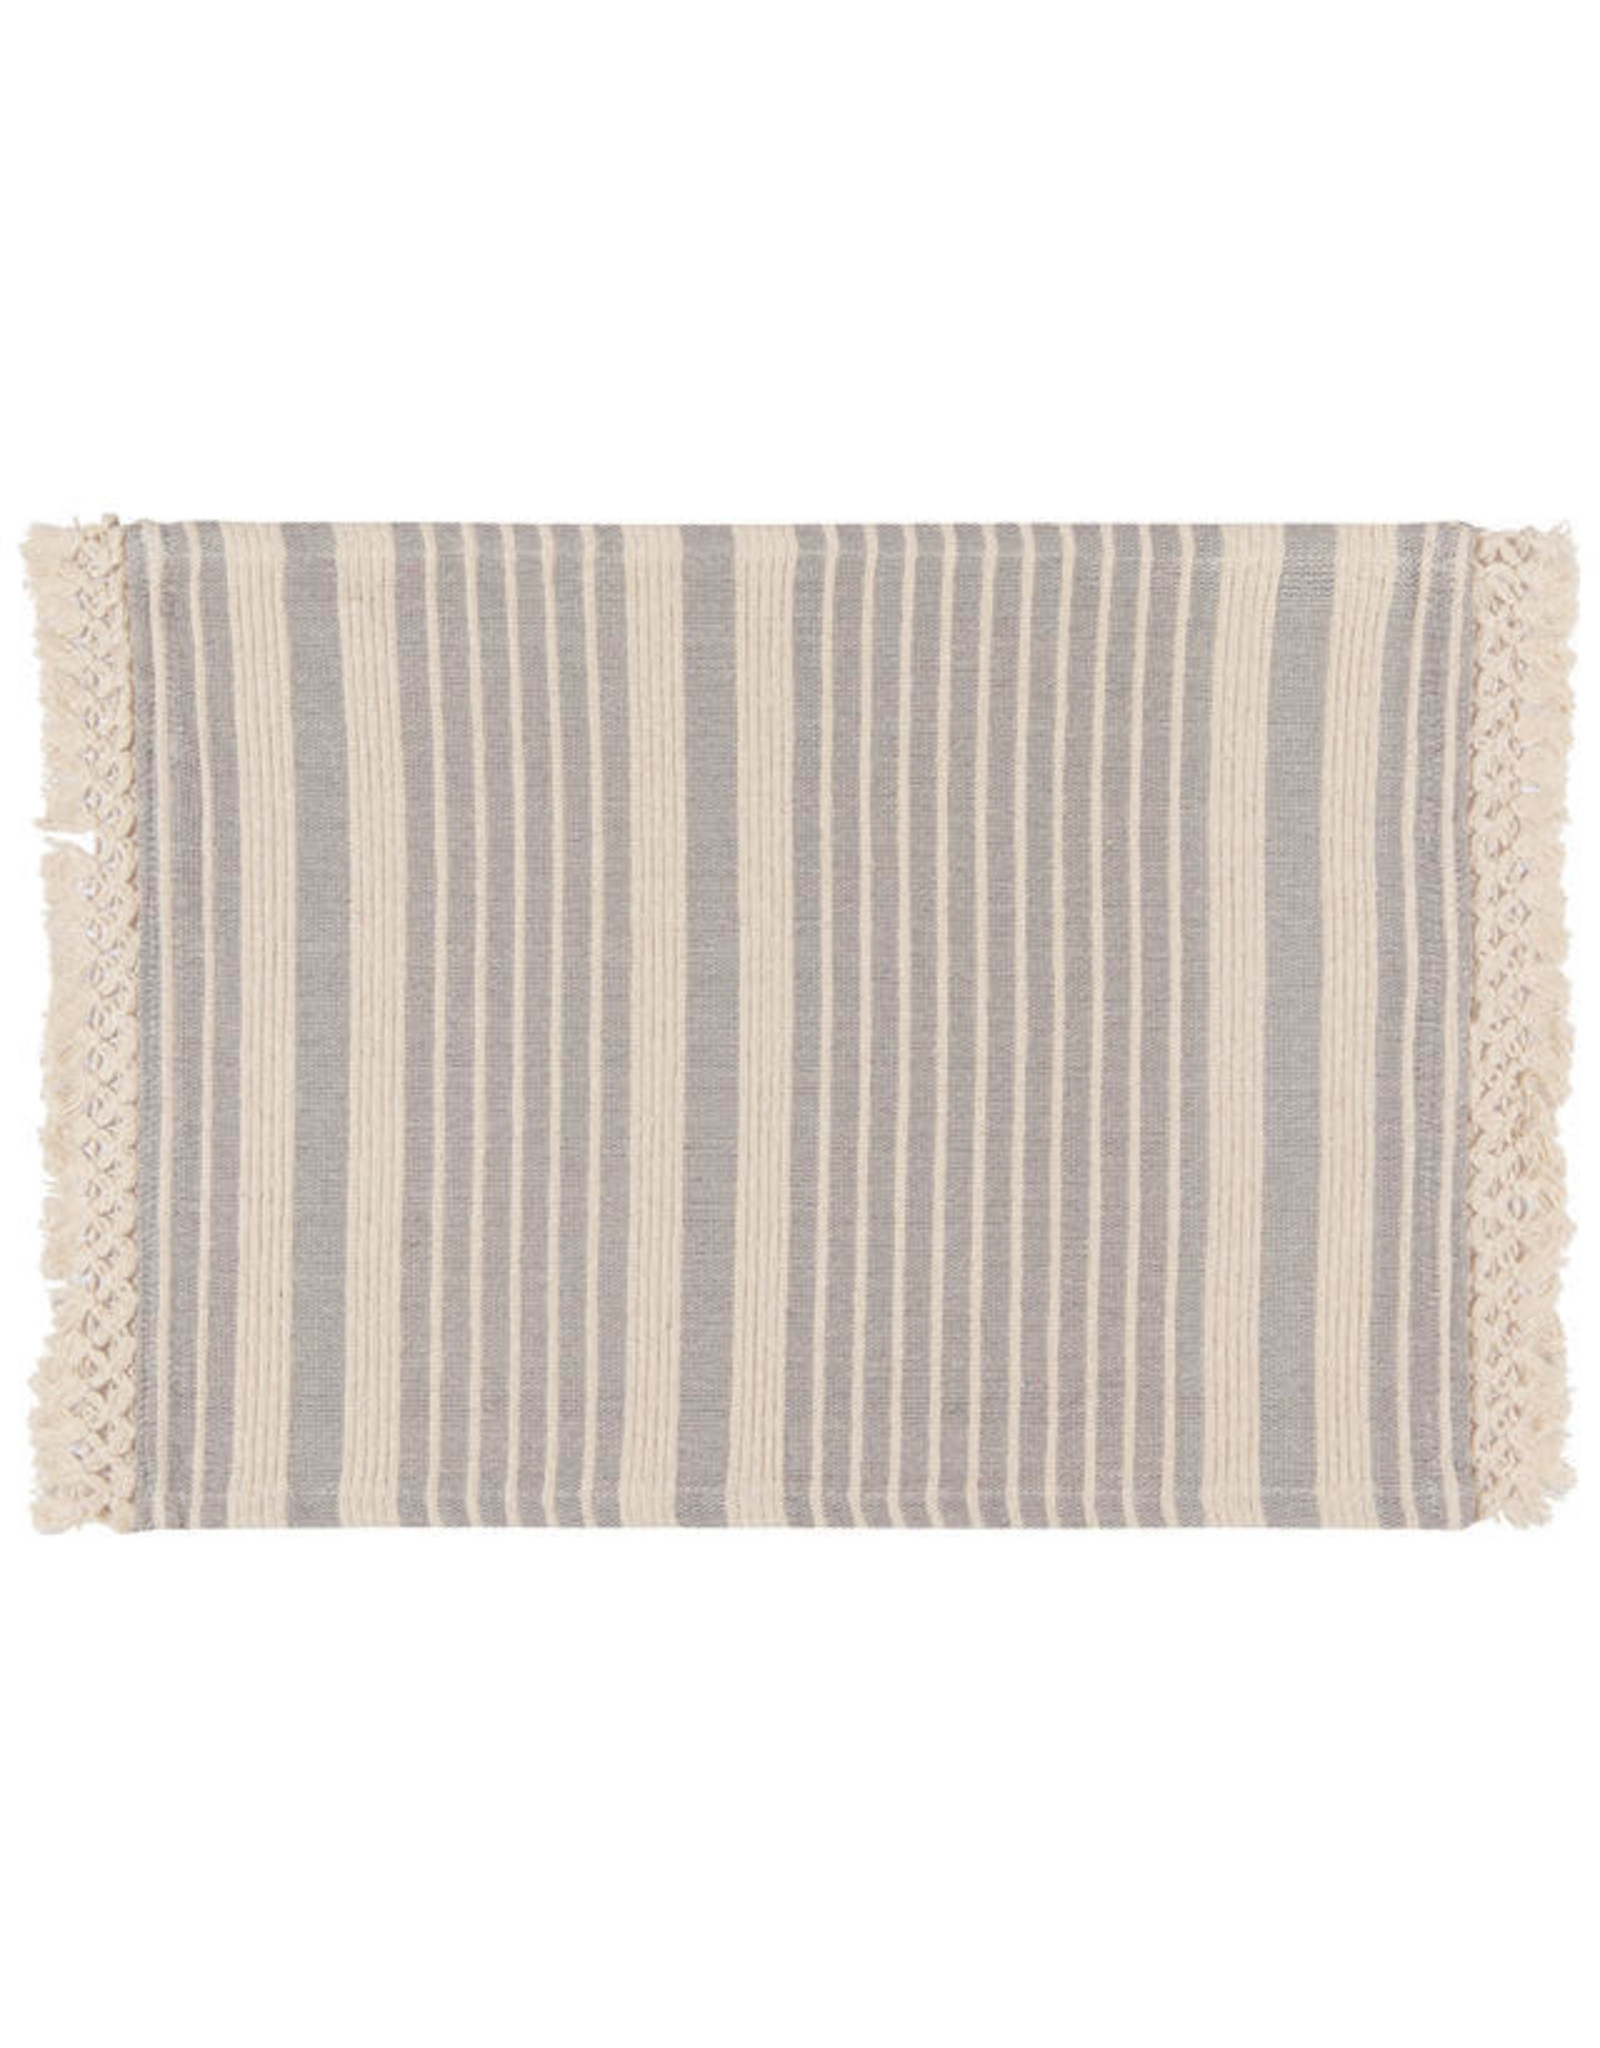 Piper Heirloom Placemats Set of 4 - Shadow